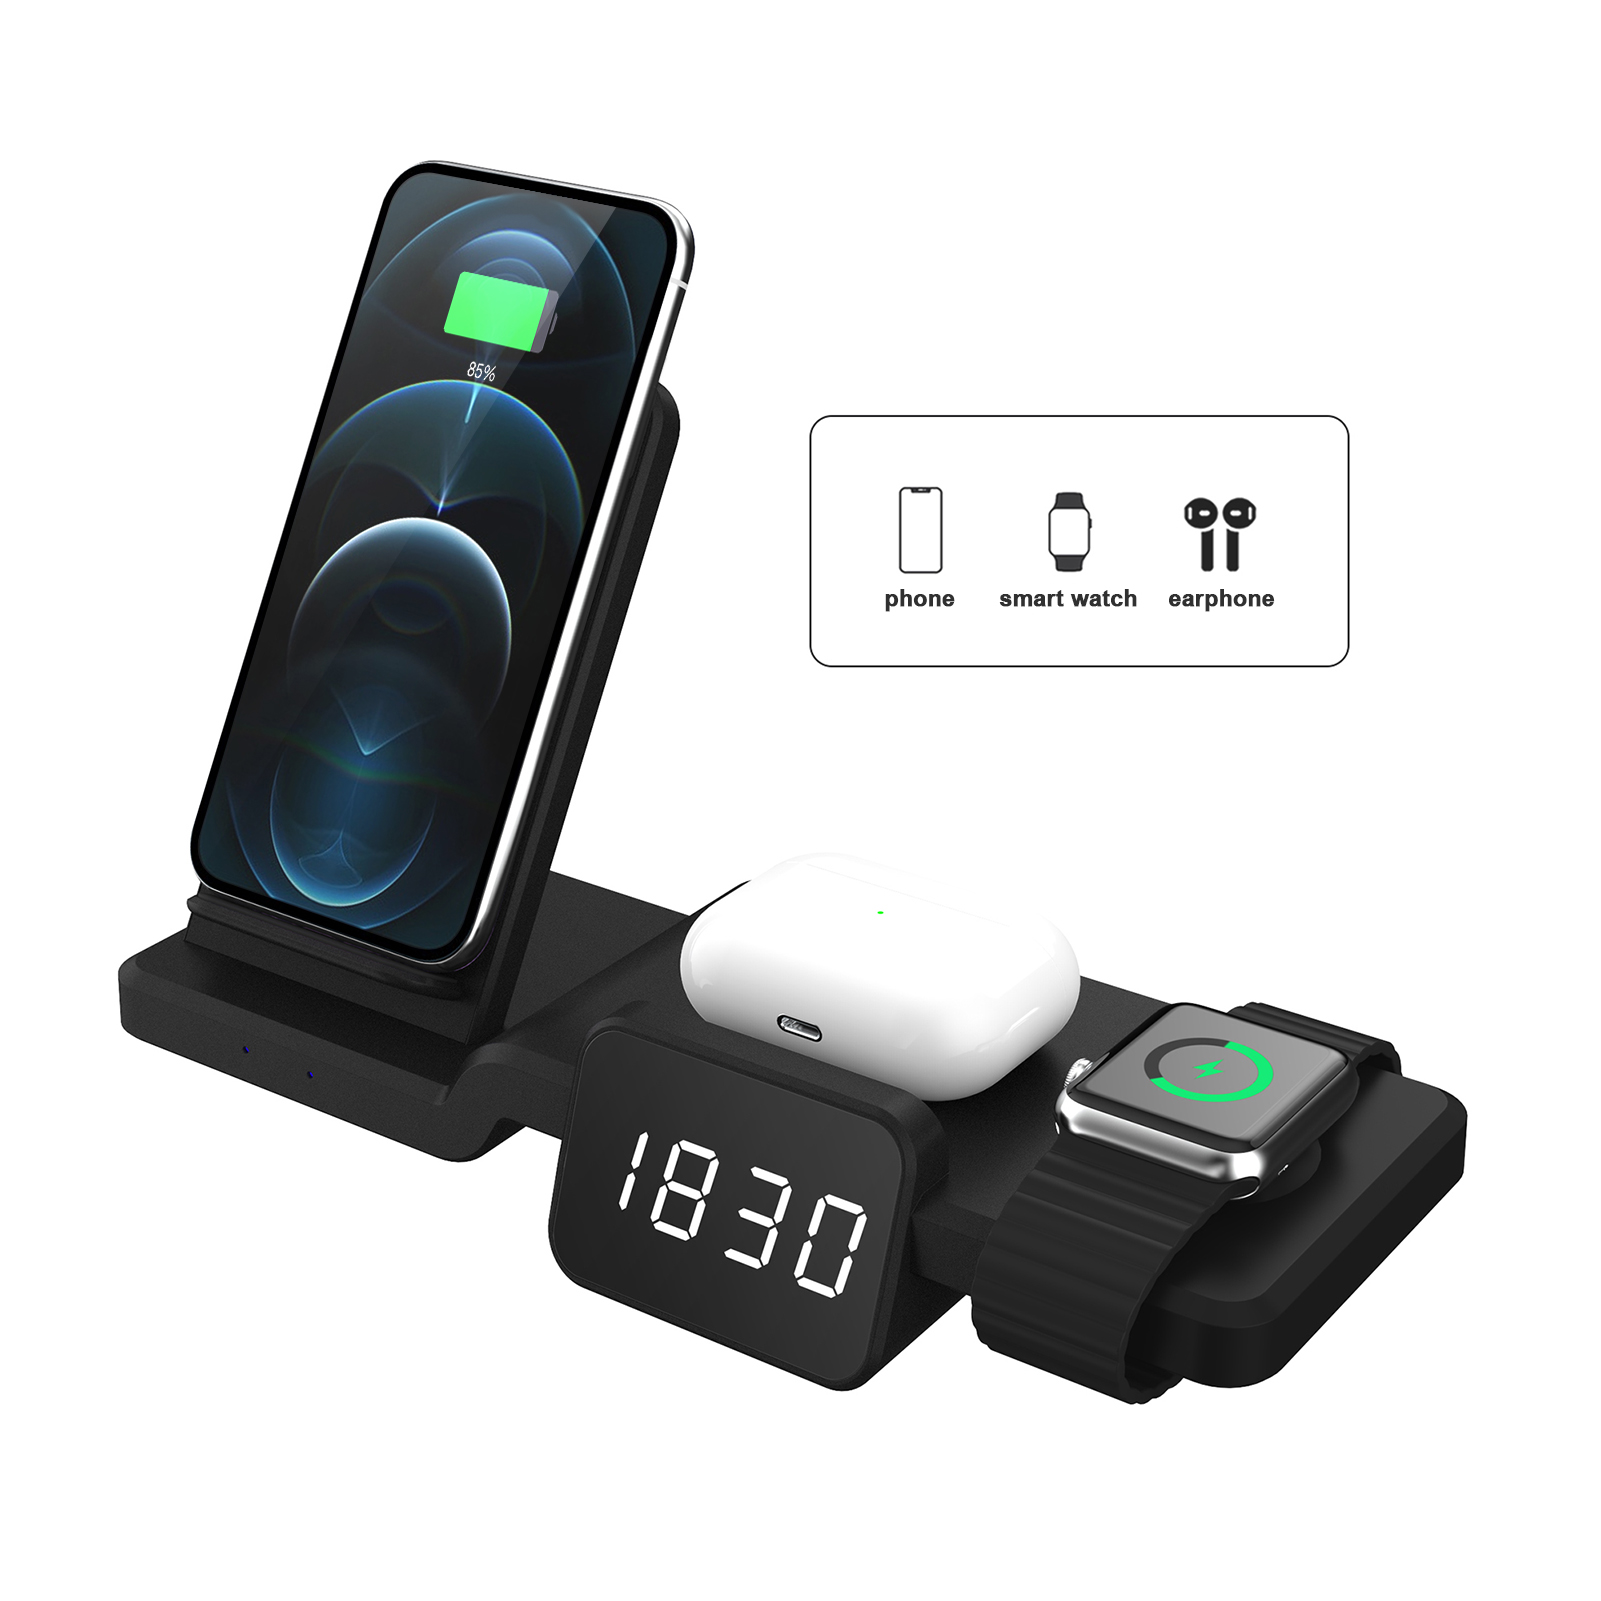 Newst Qi Wireless Charger Stand Charging Dock Station 3 in 1 with Clock for Iphone 12 XS X for Apple Watch 6 Airpods Pro USB